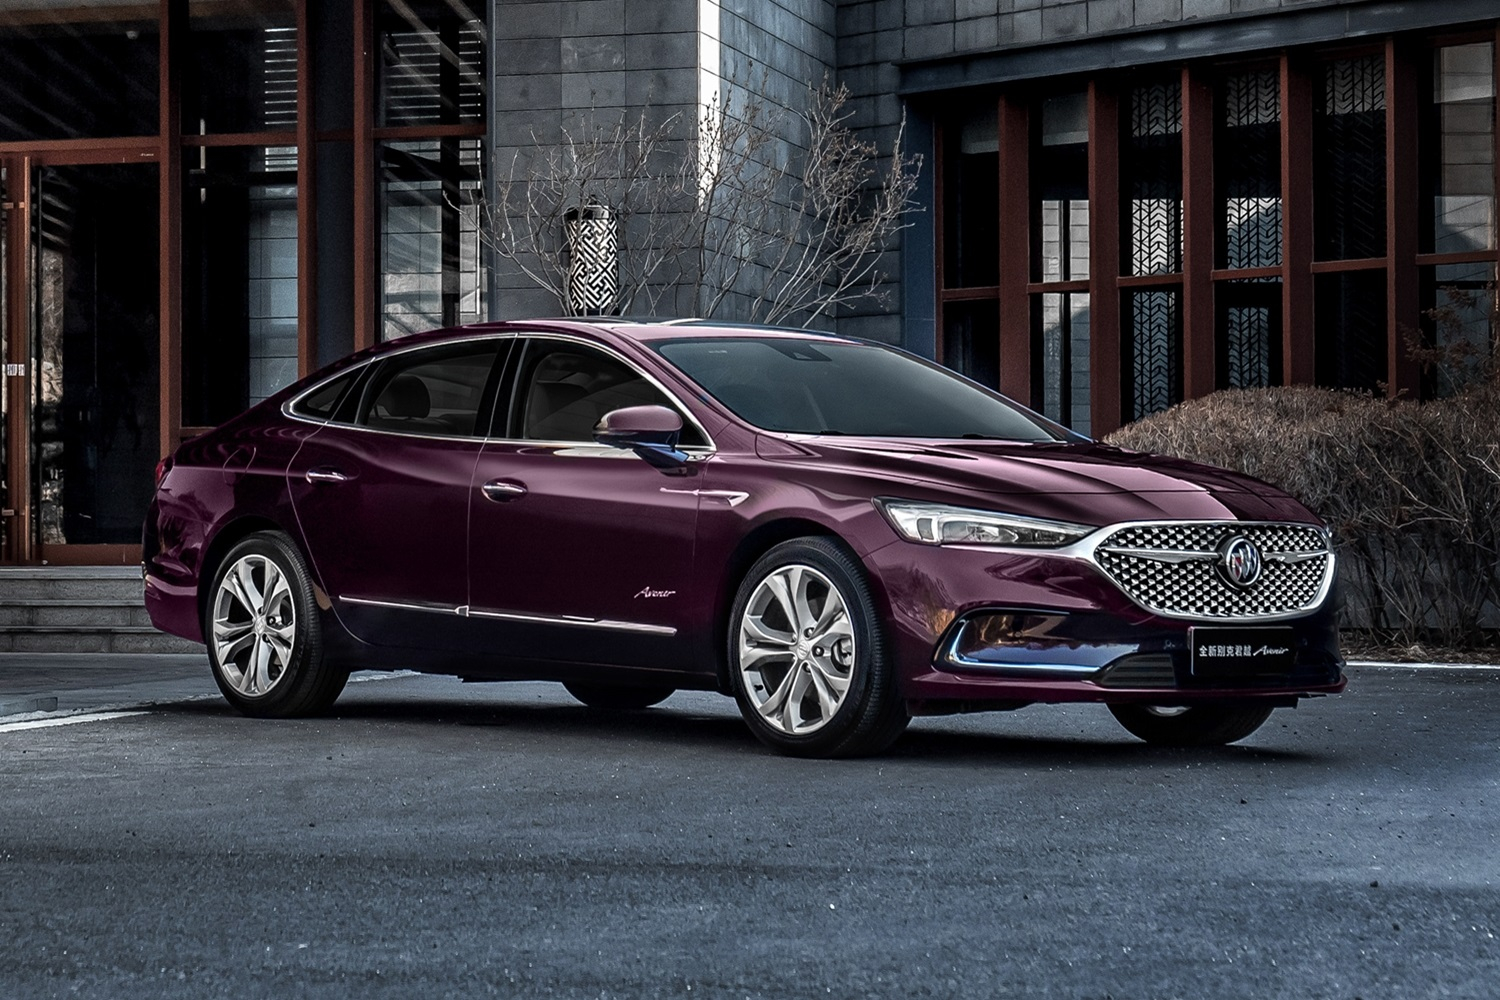 2021 Buick Lacrosse Gets More Refined Than Ever | Gm Authority Picture Of A New 2021 Buick Lacrosse